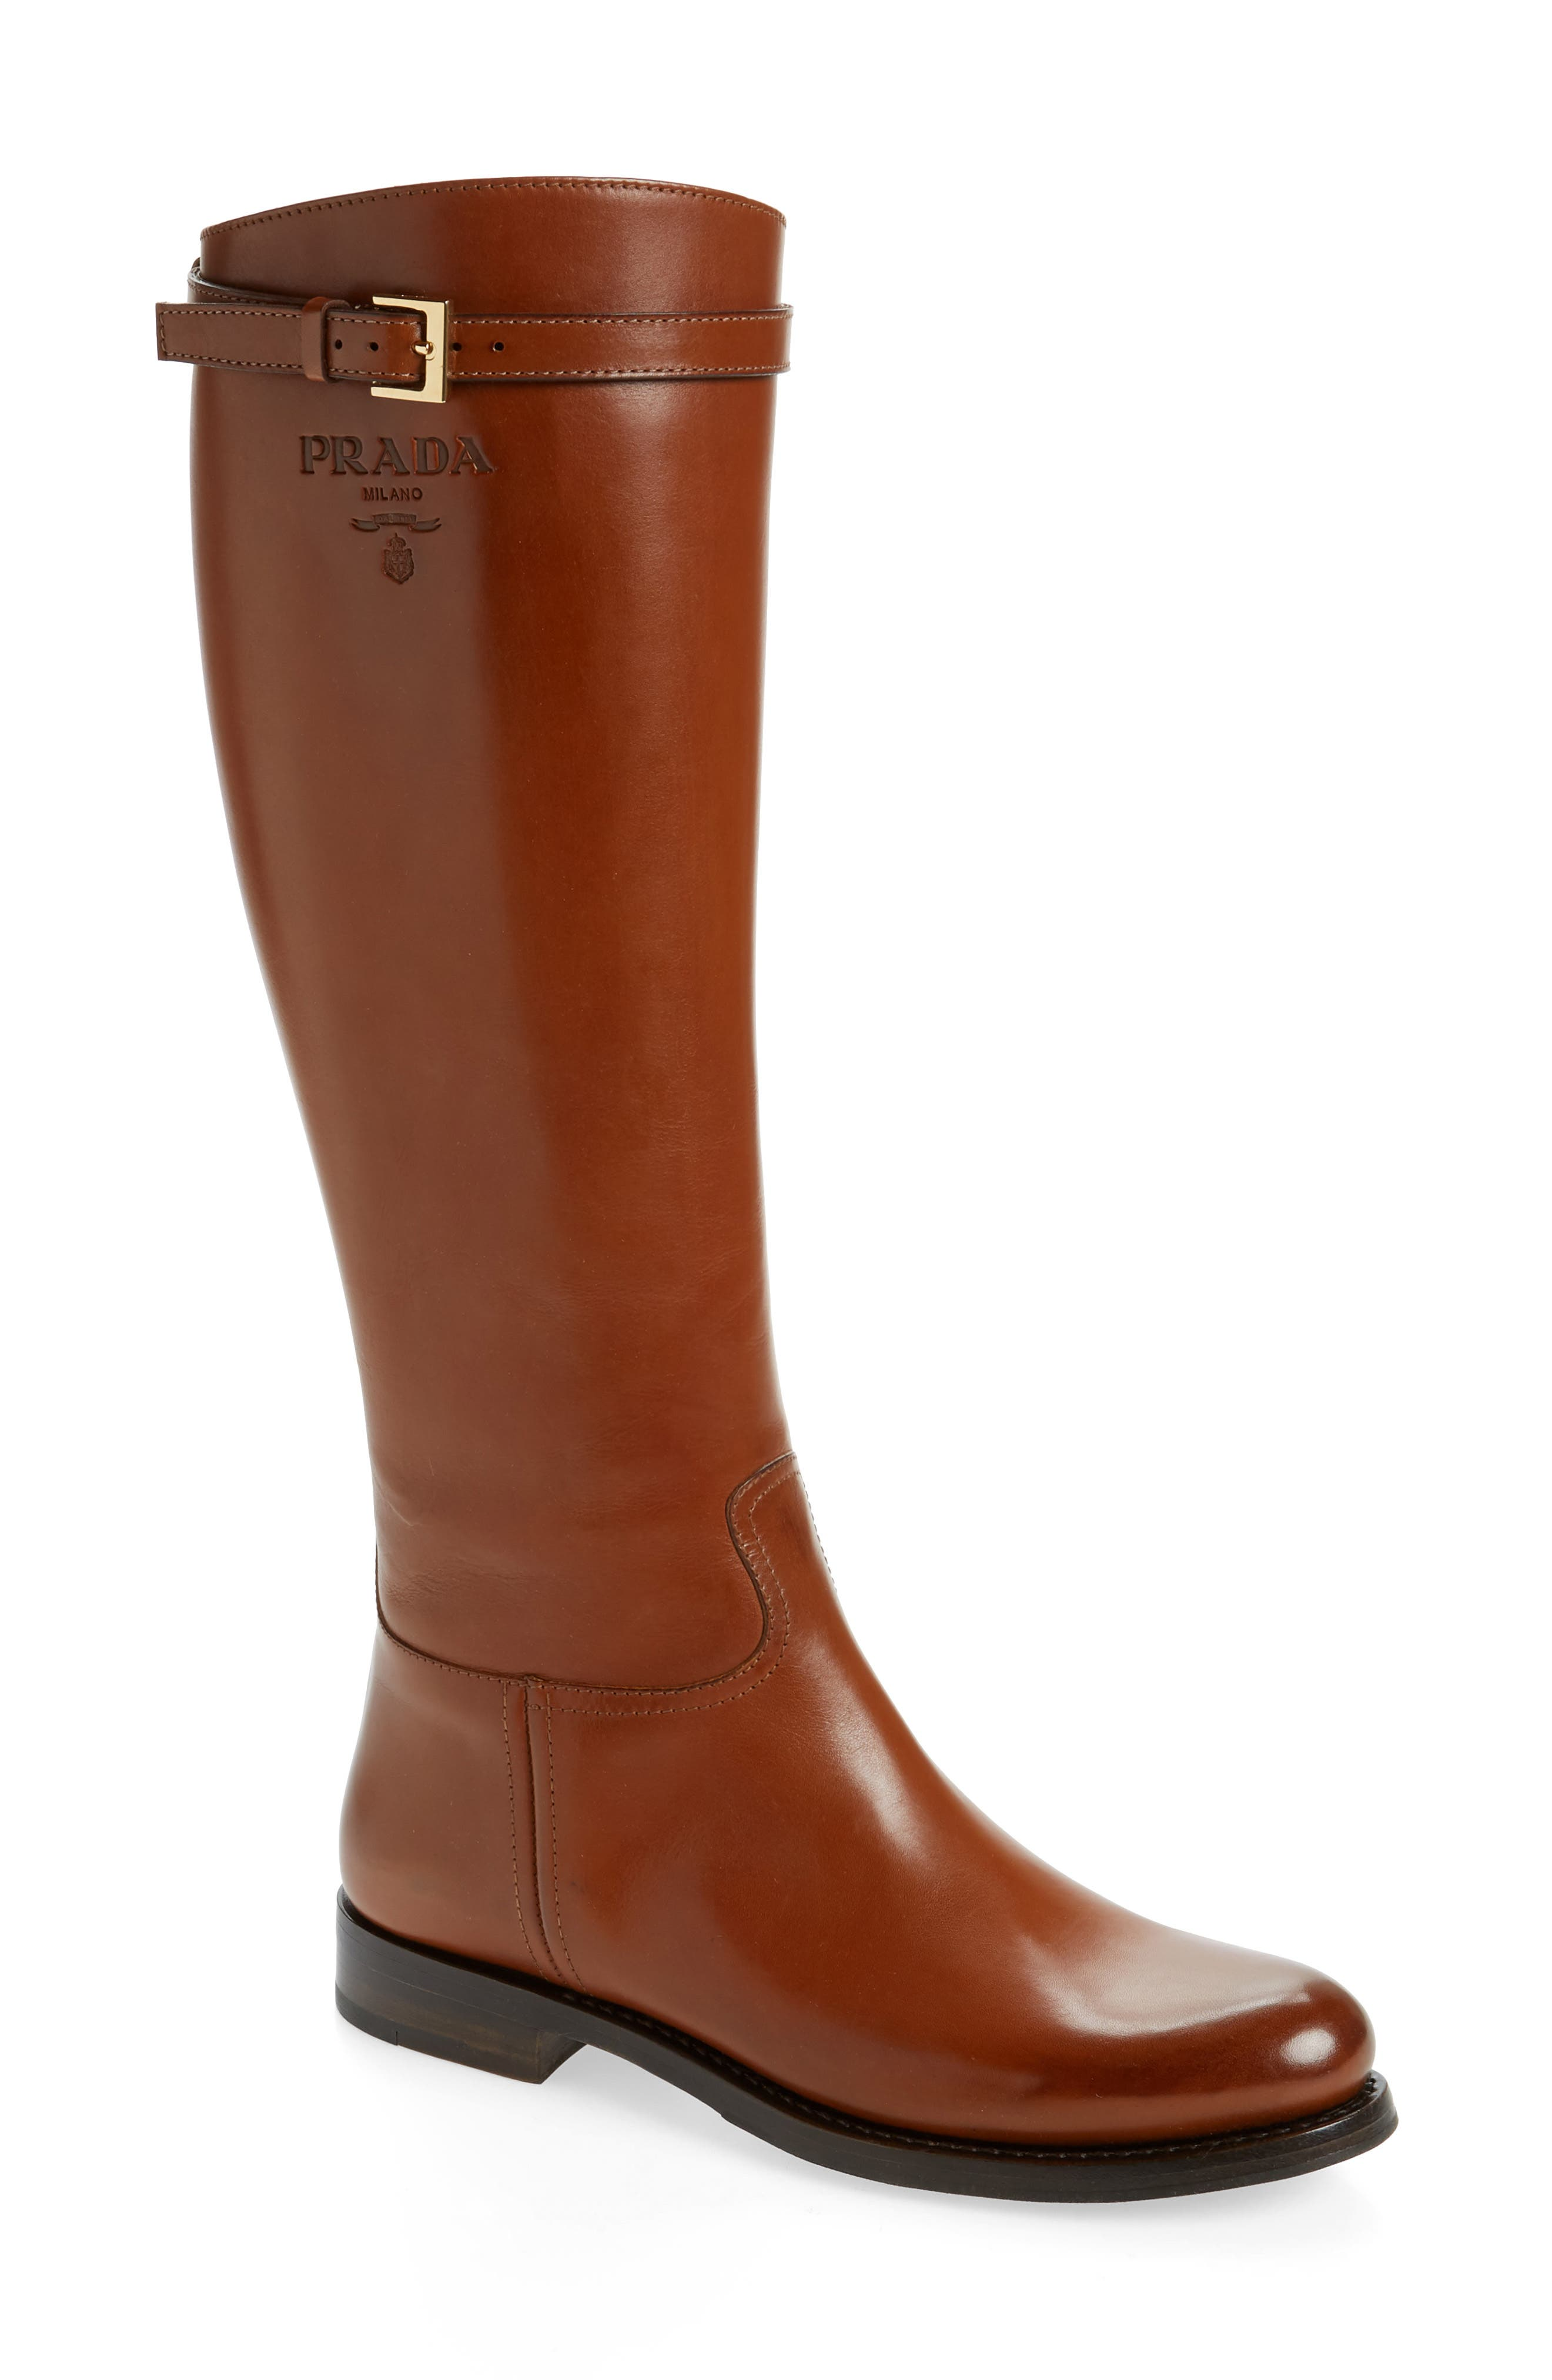 A sleek riding boot in supple leather features logo embossing and a trim belt at the topline. Style Name: Prada Knee High Riding Boot (Women). Style Number: 6002158. Available in stores.